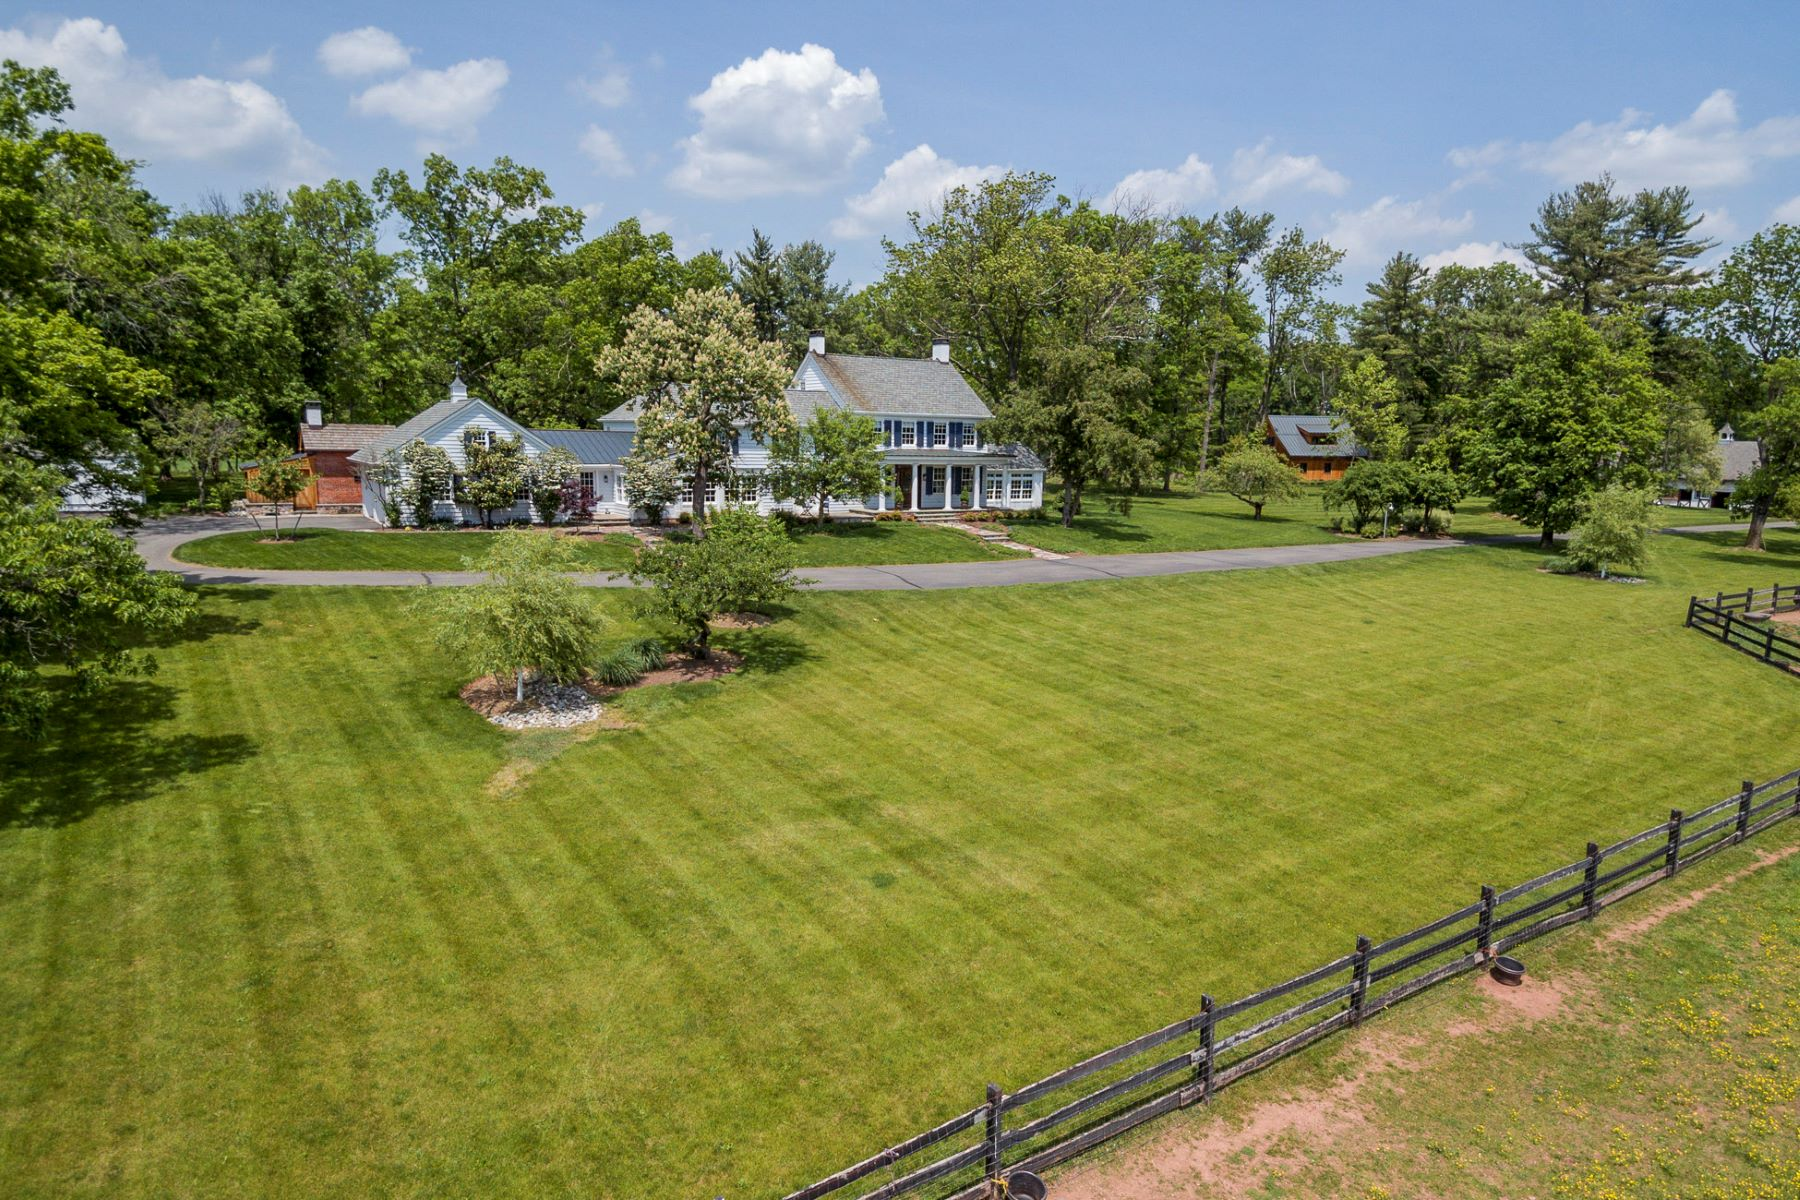 Vivienda unifamiliar por un Venta en Historic Farm Reimagined for the Modern Equestrian - Hopewell Township 266 Province Line Road, Skillman, Nueva Jersey 08558 Estados UnidosEn/Alrededor: Hopewell Township